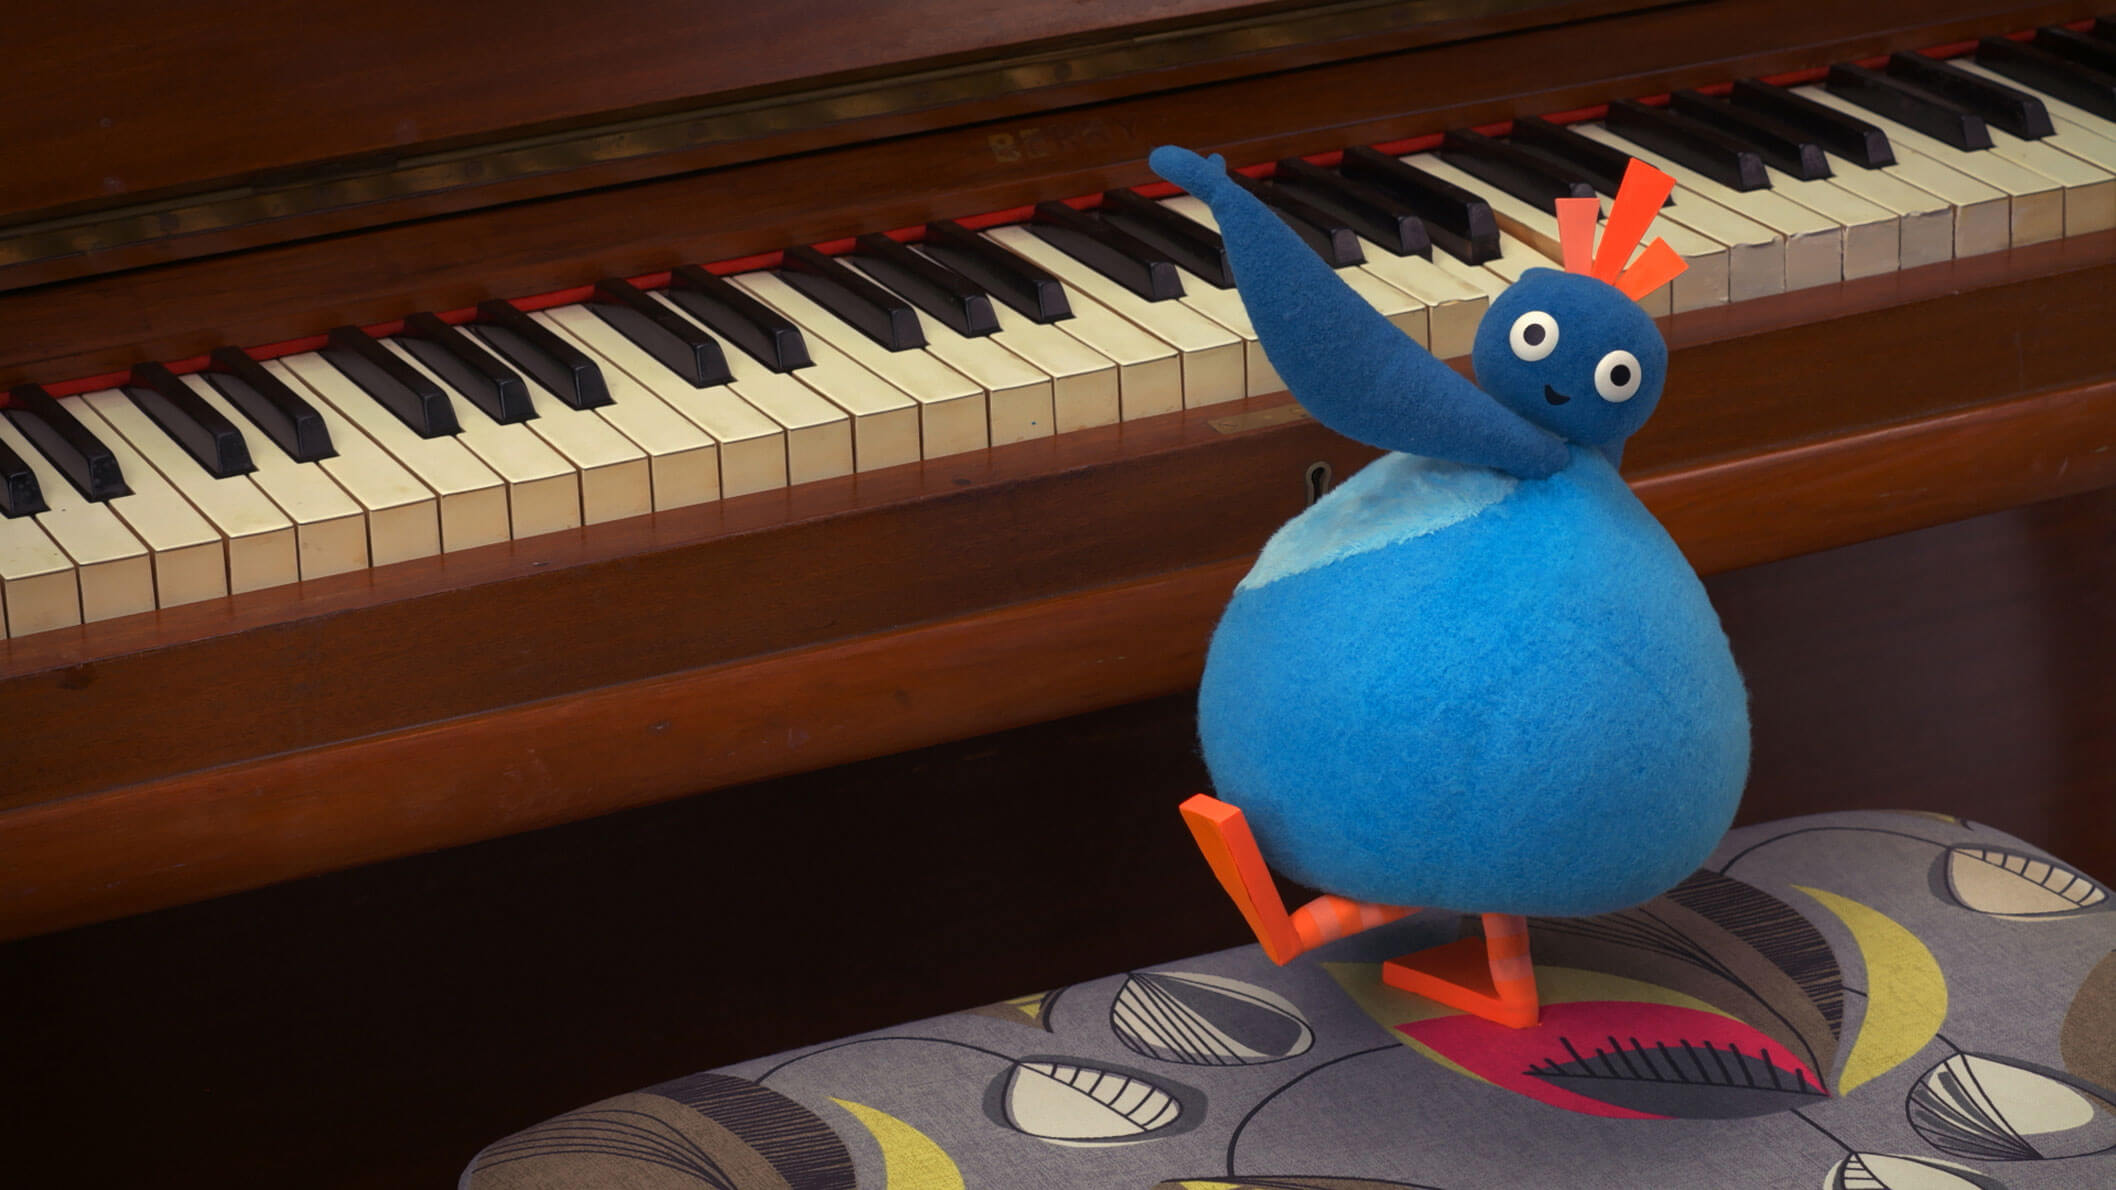 A small, round, blue character playing on a brown piano with it's head turned away from the piano keys.